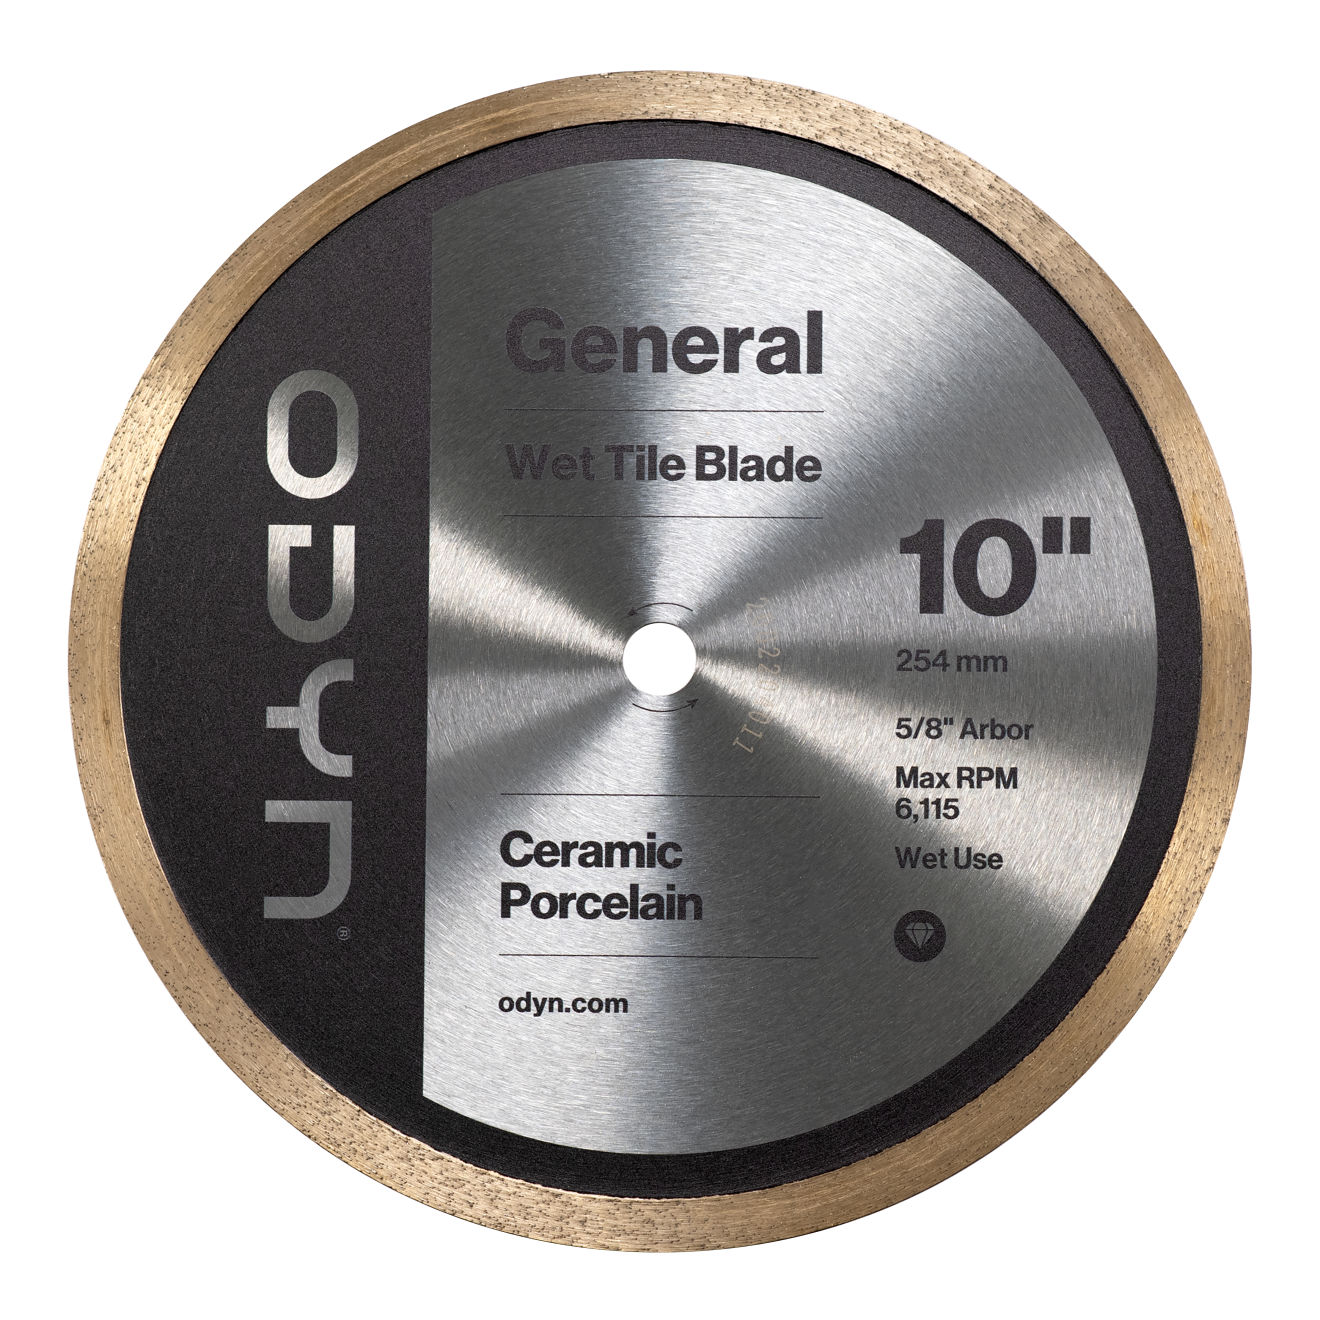 Odyn 10 in. General Wet Tile Blade